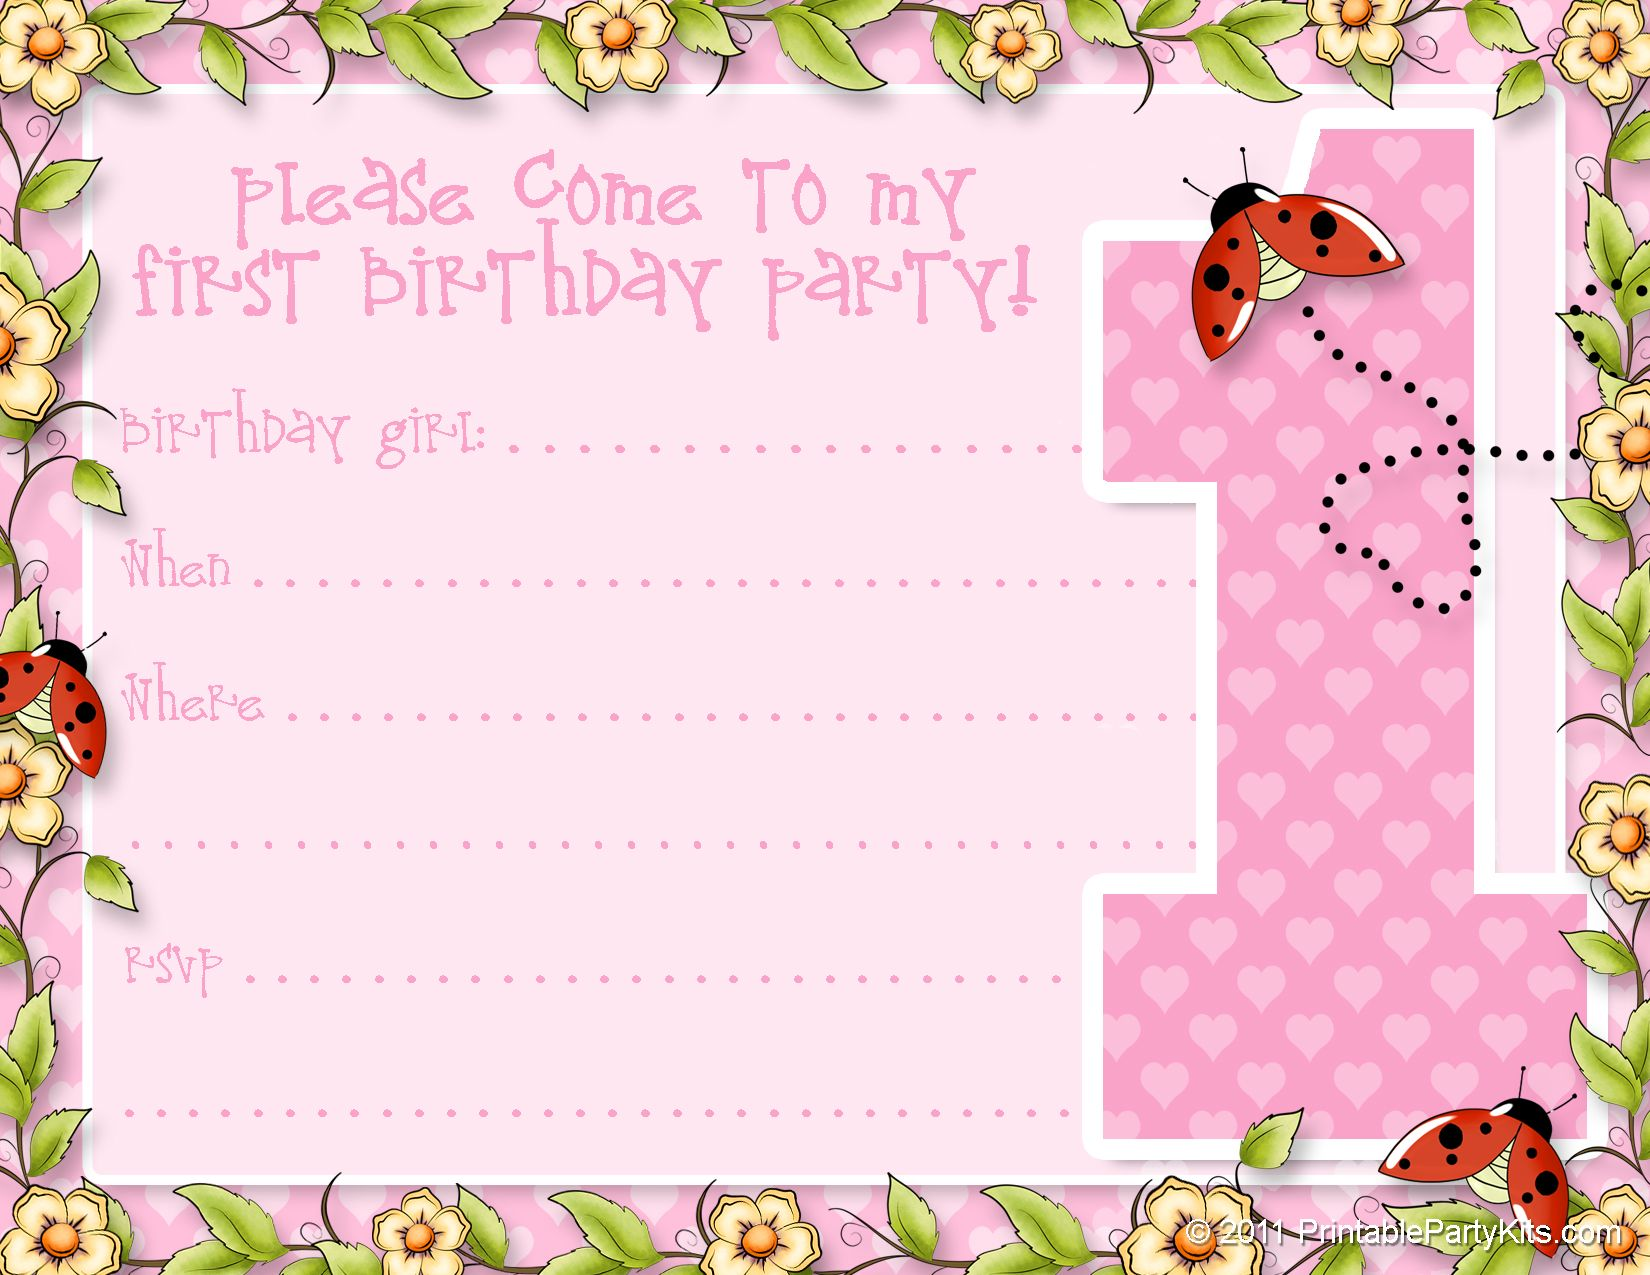 FREE PRINTABLE GIRLS ST BIRTHDAY INVITATION TEMPLATES Google - Birthday invitation on mail